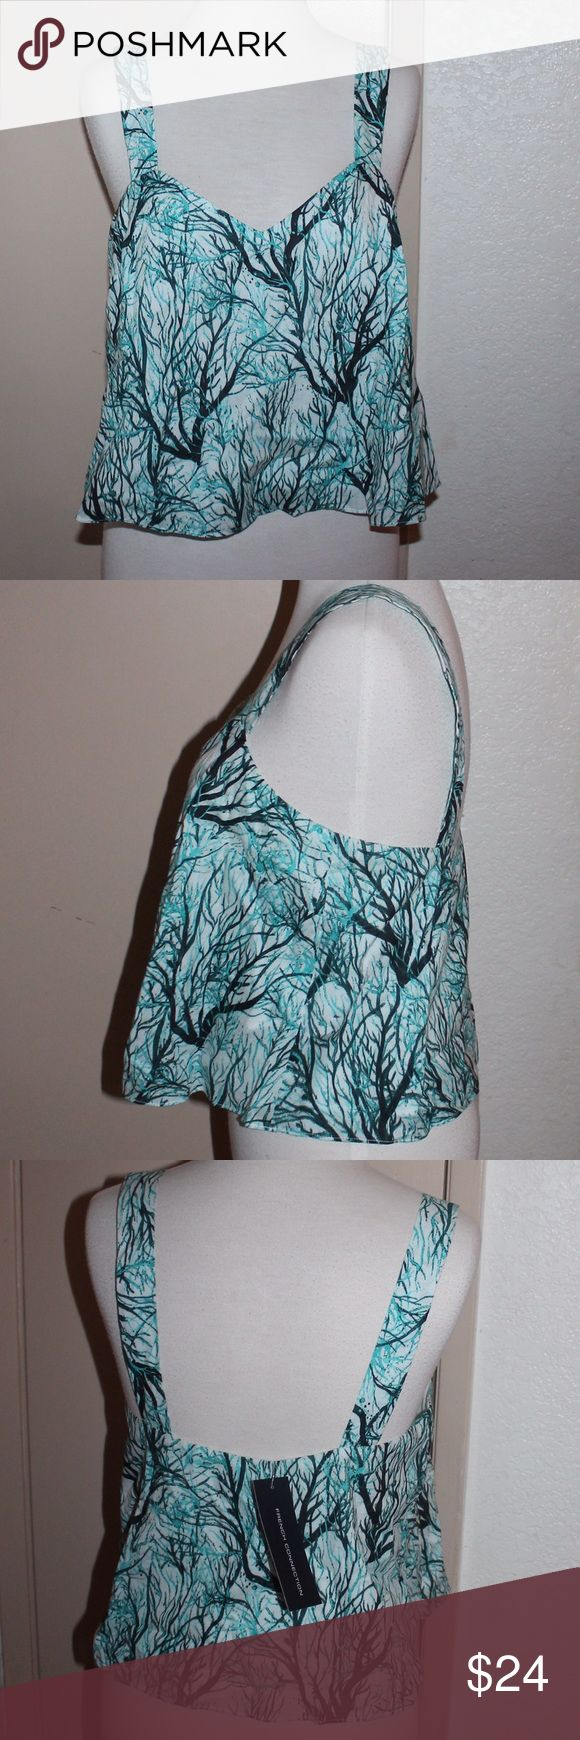 French Connection sea fern cotton crop NWT 72DNM French Connection sea fern cotton crop NWT style 72DNM colour: 30 west lake multi s/less top US size 6 UK 10 FA 38 CA 34338 RN 53372 MSRP $68.00 sku 8 86928 42354 7 French Connection Tops